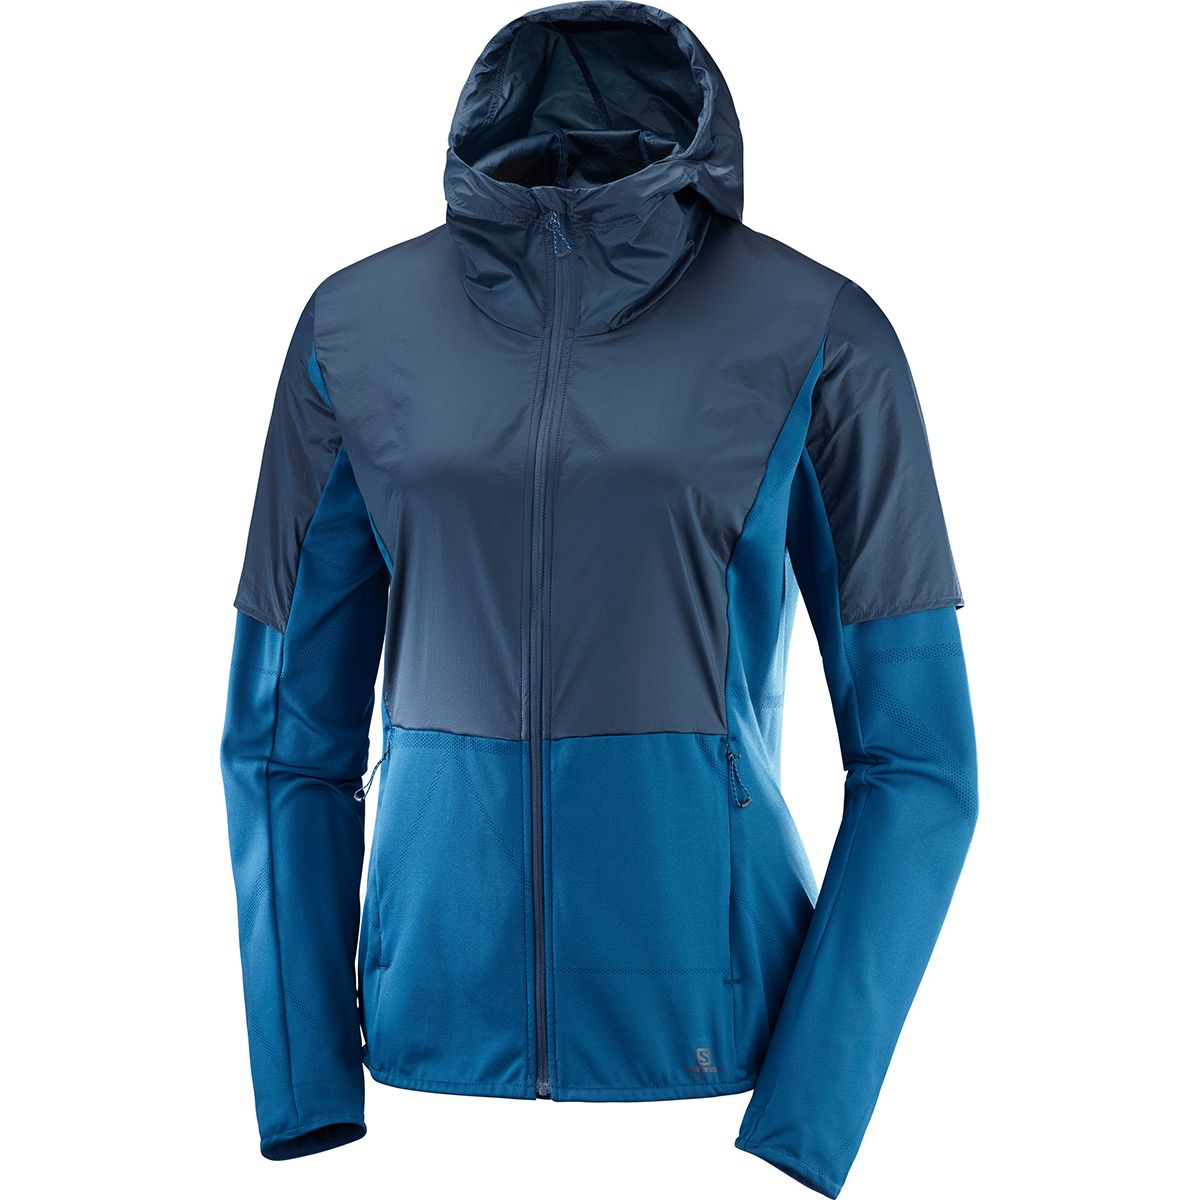 Salomon Damen Elevate Aero Jacke (Größe XS, Blau) | Windbreaker > Damen